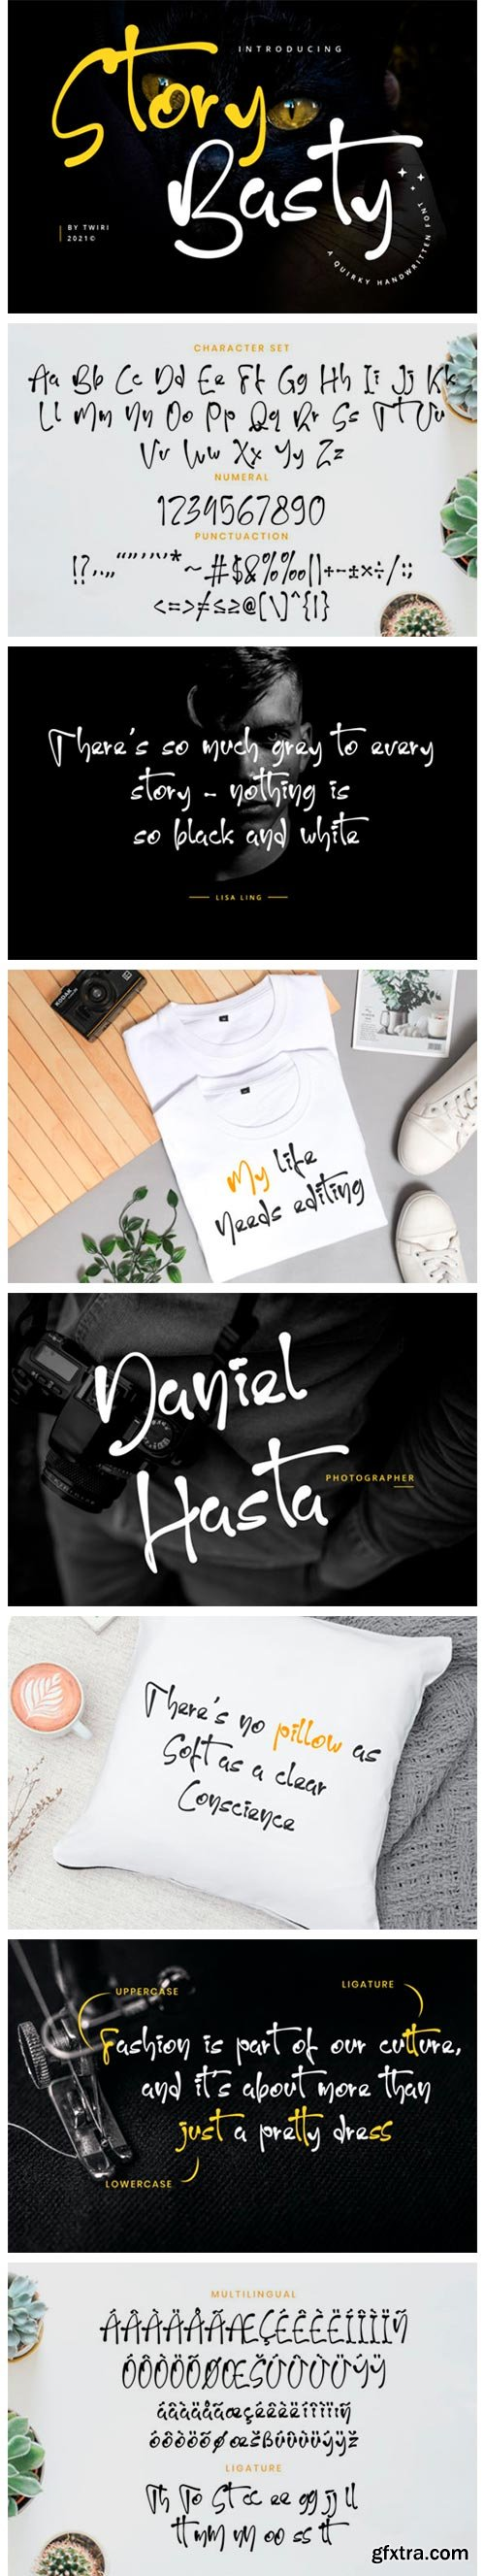 Story Basty Quirky Handwritten Font